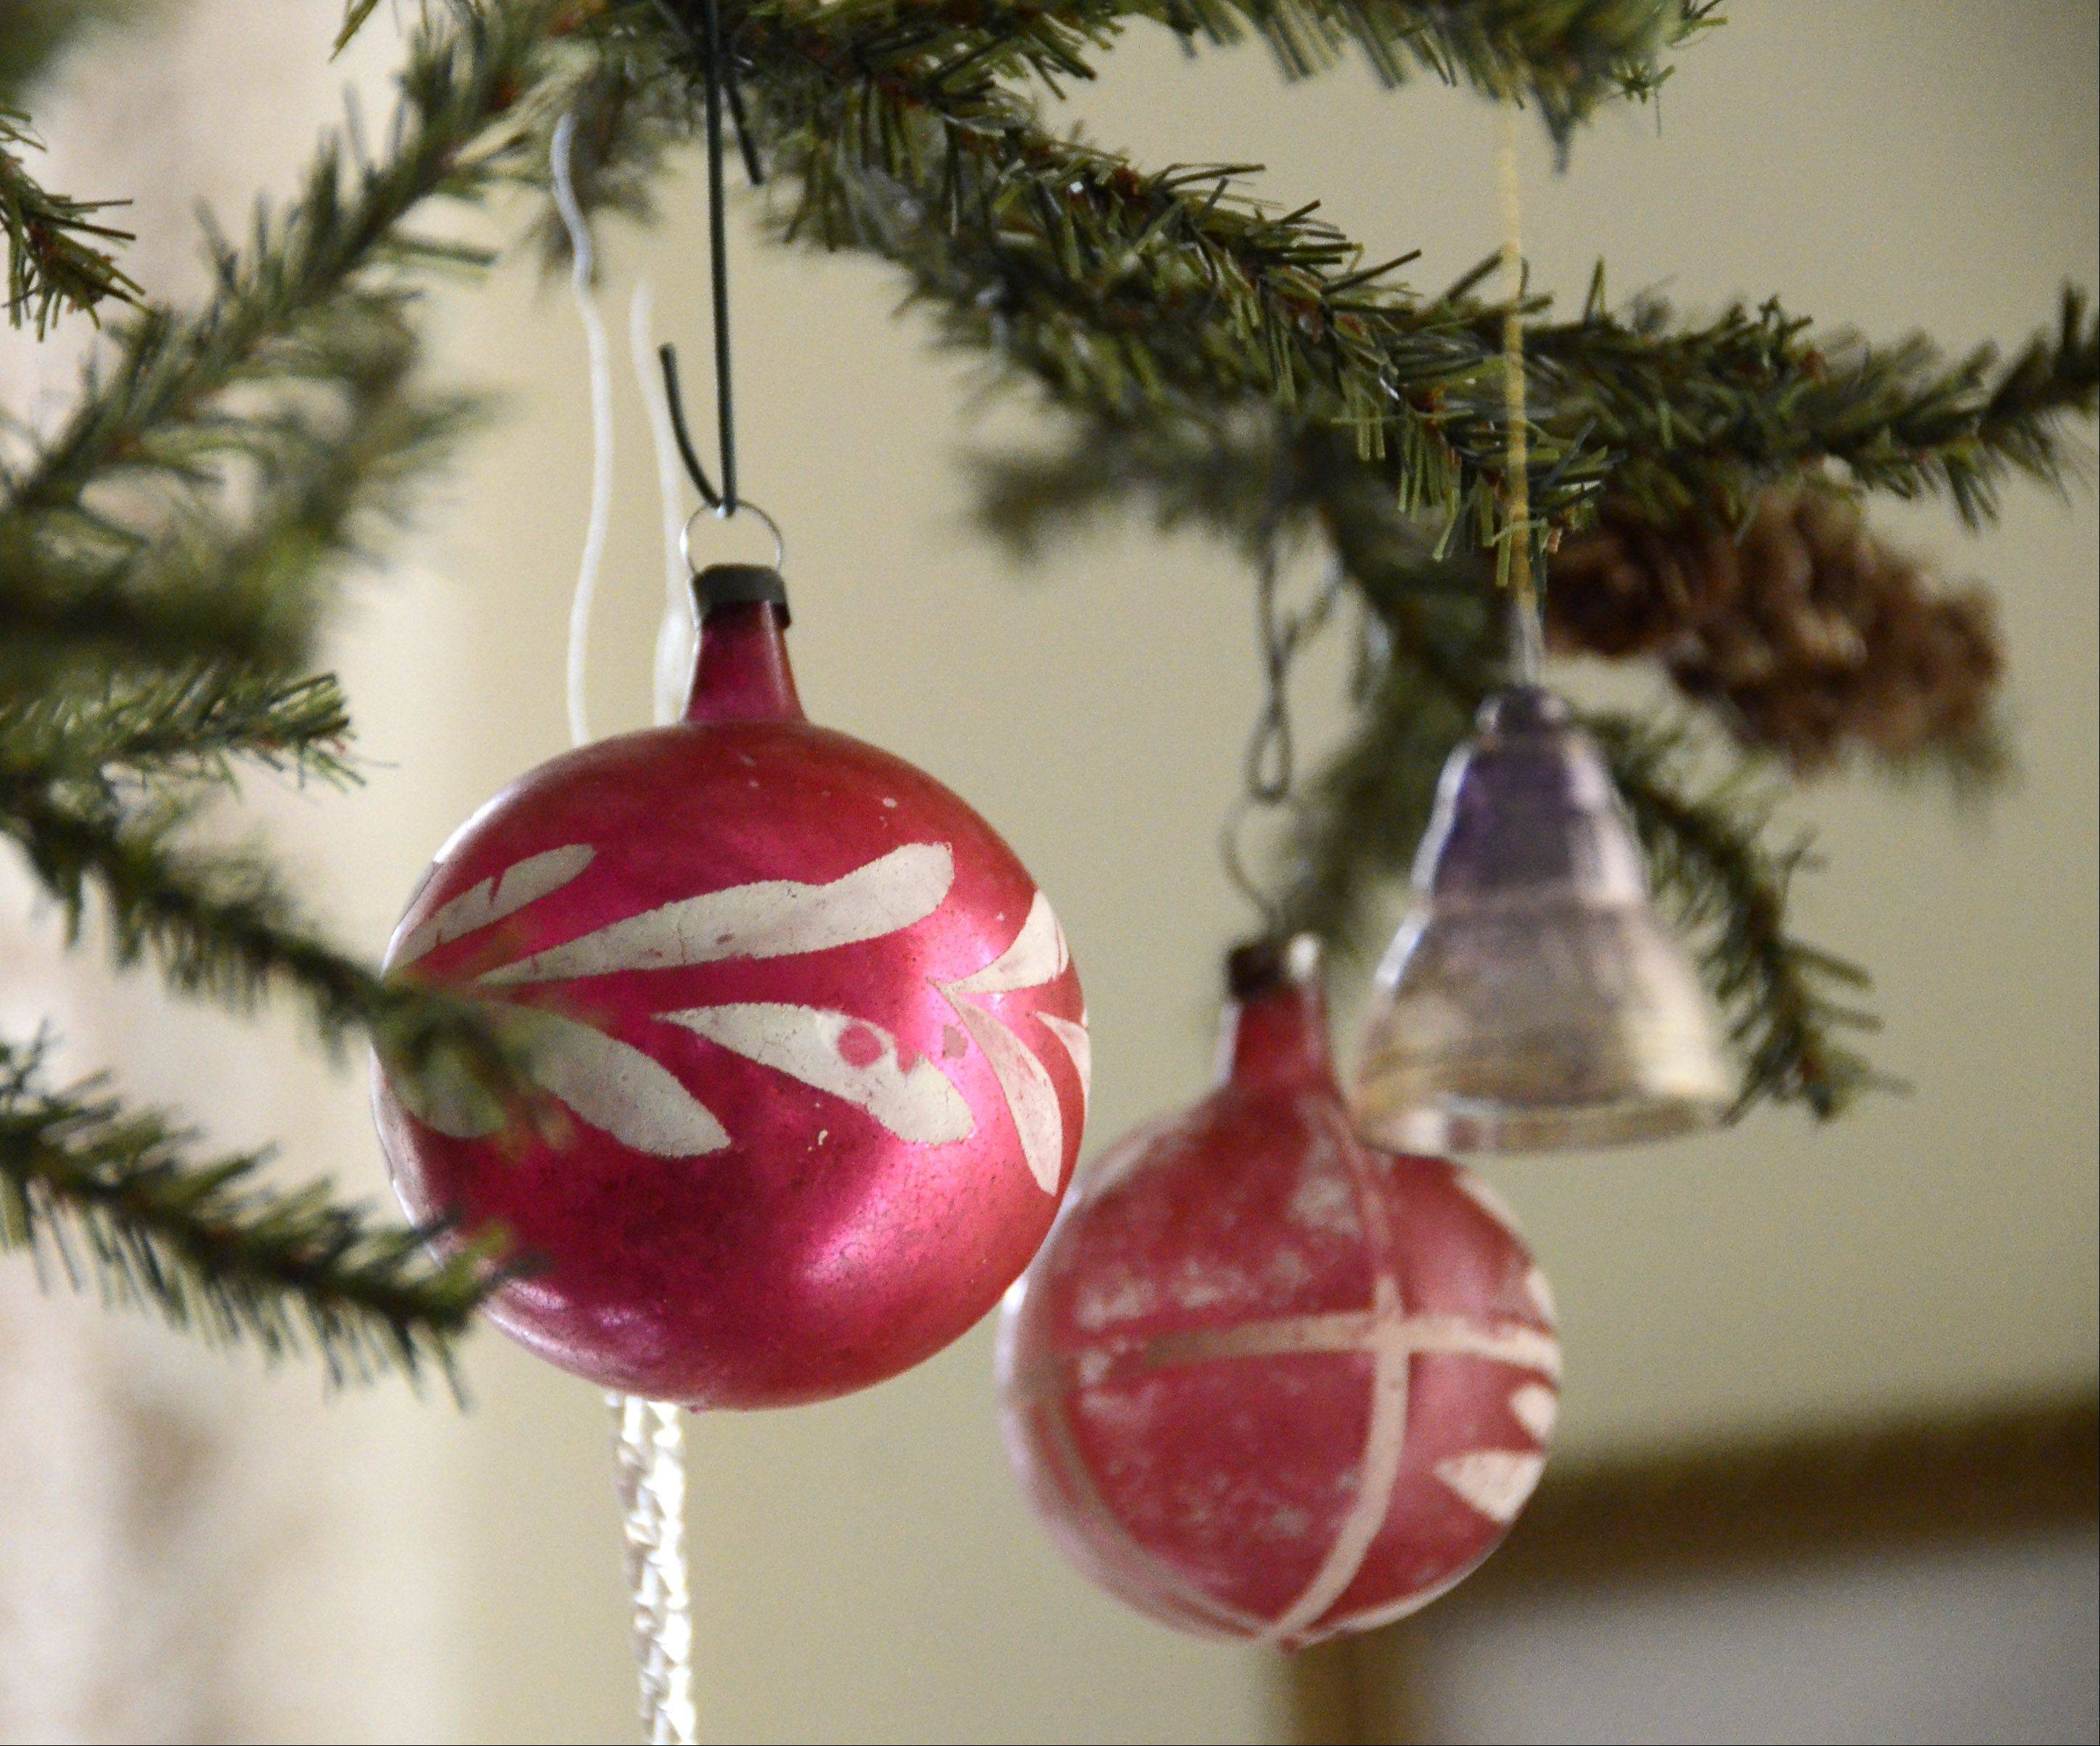 Antique ornaments adorn the dining room tree.